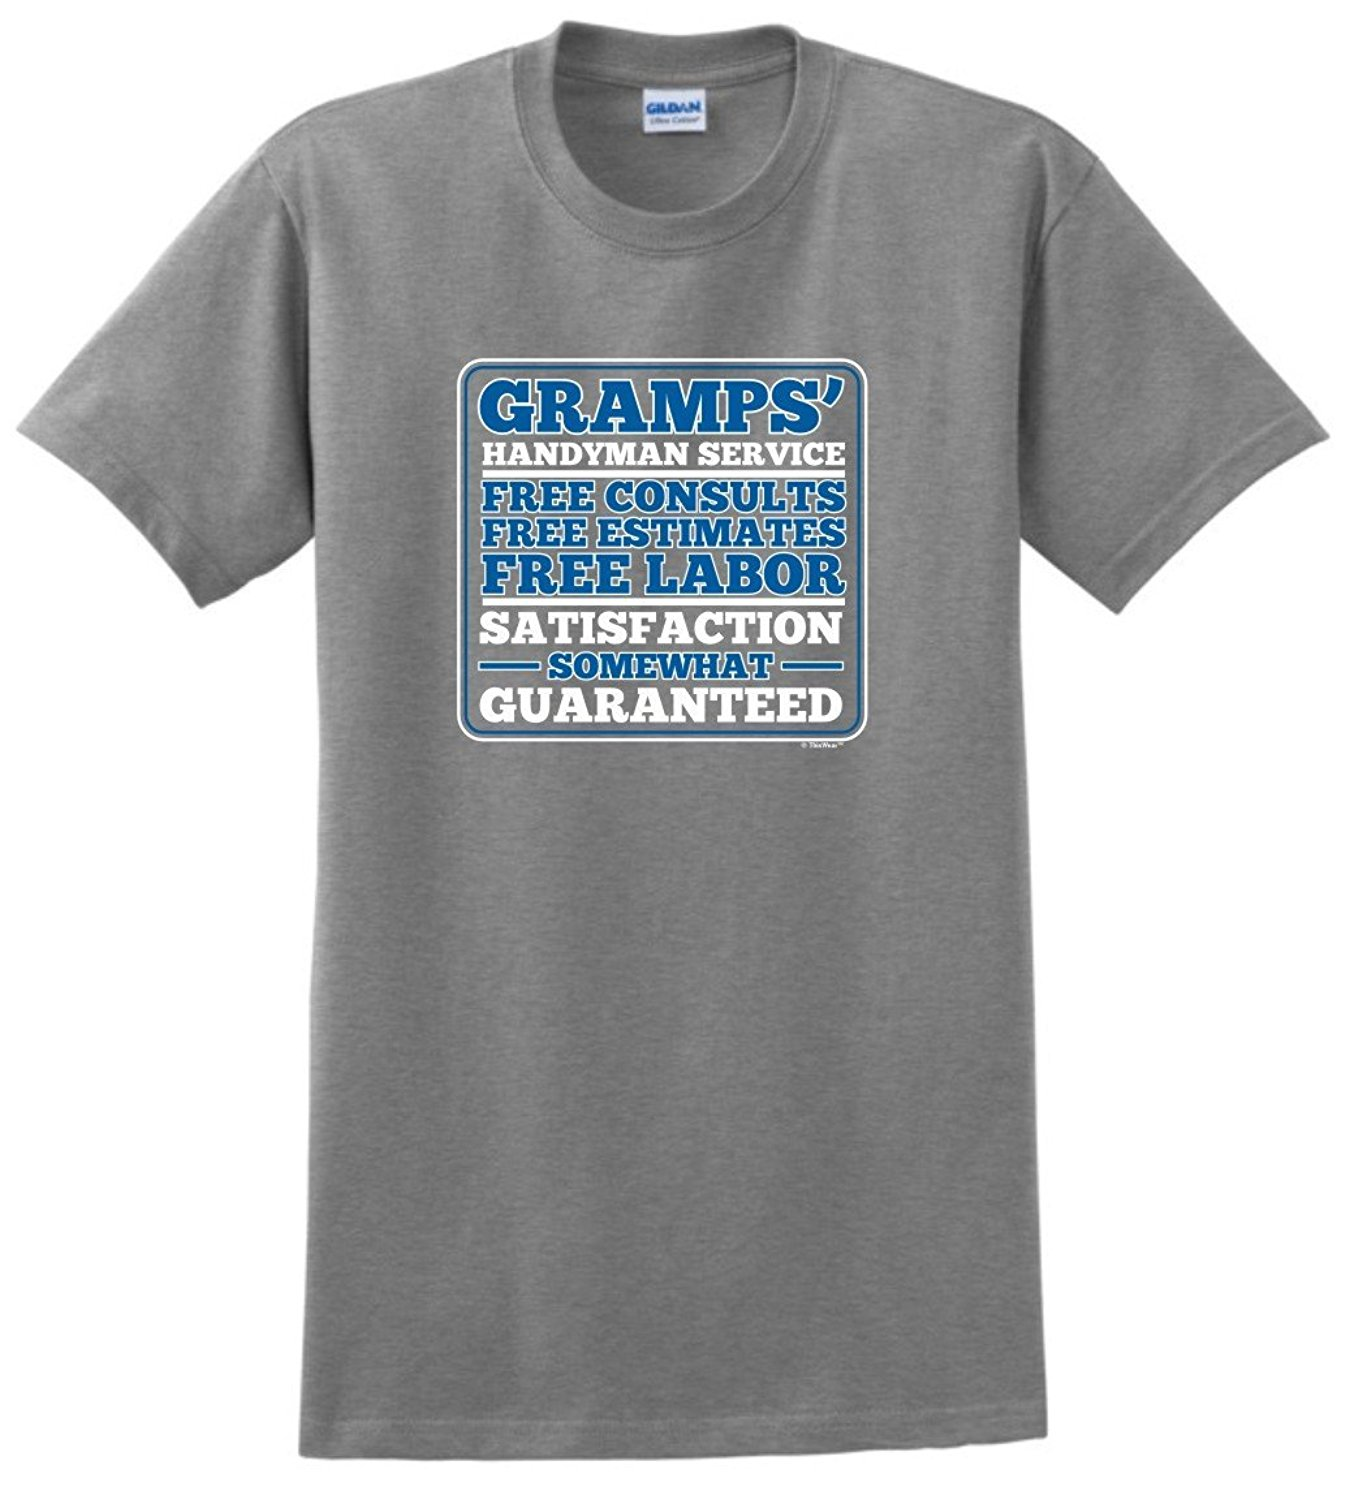 Compare Prices on Customize Shirt- Online Shopping/Buy Low Price ...